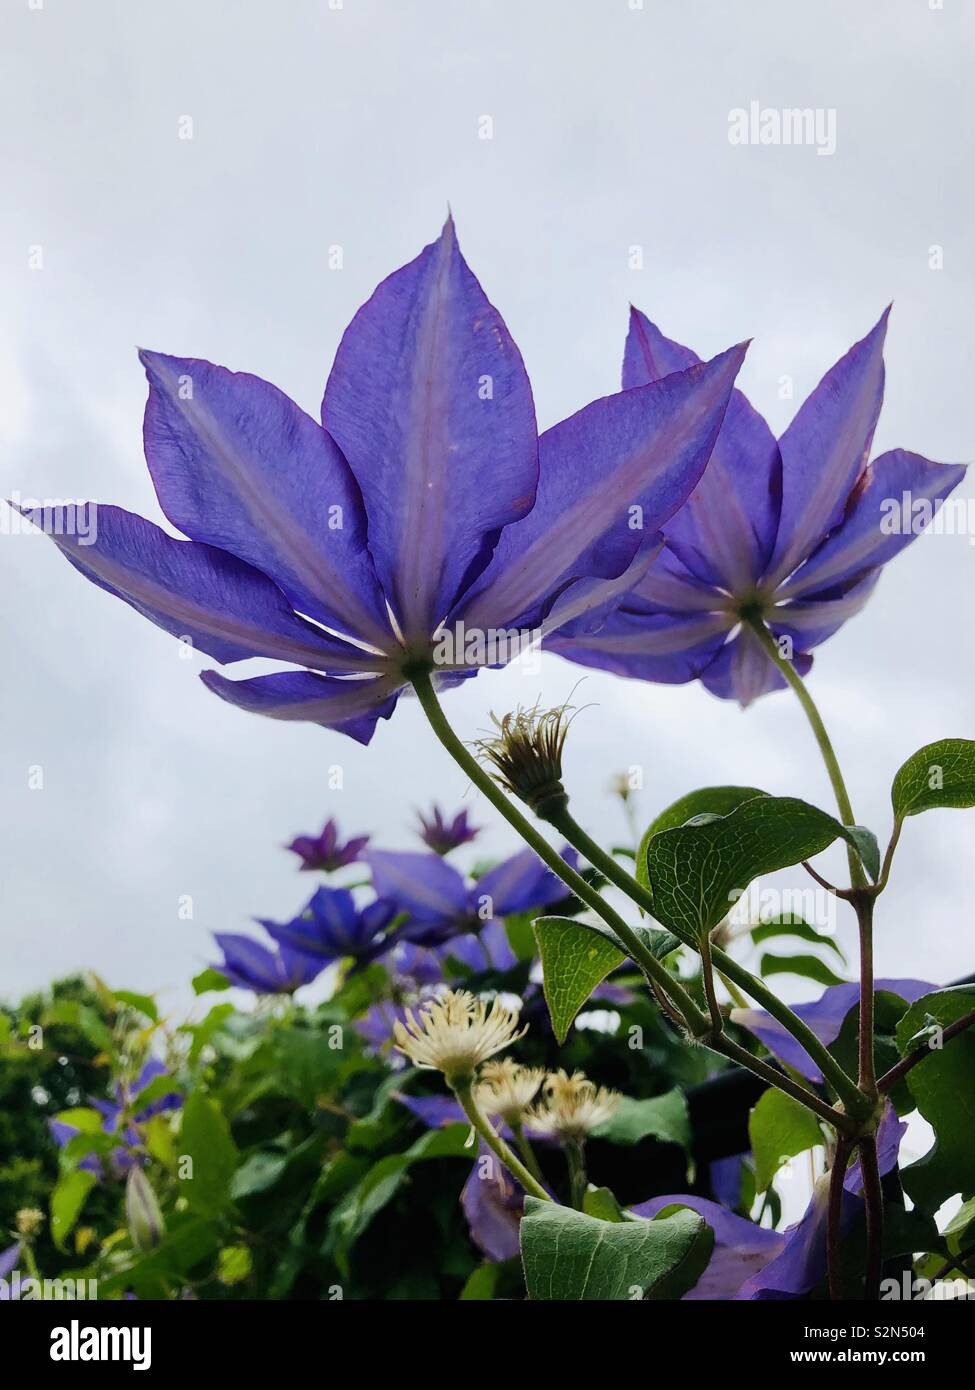 Blooming clematis vine with several violet blossoms taken from below with sky in background - Stock Image